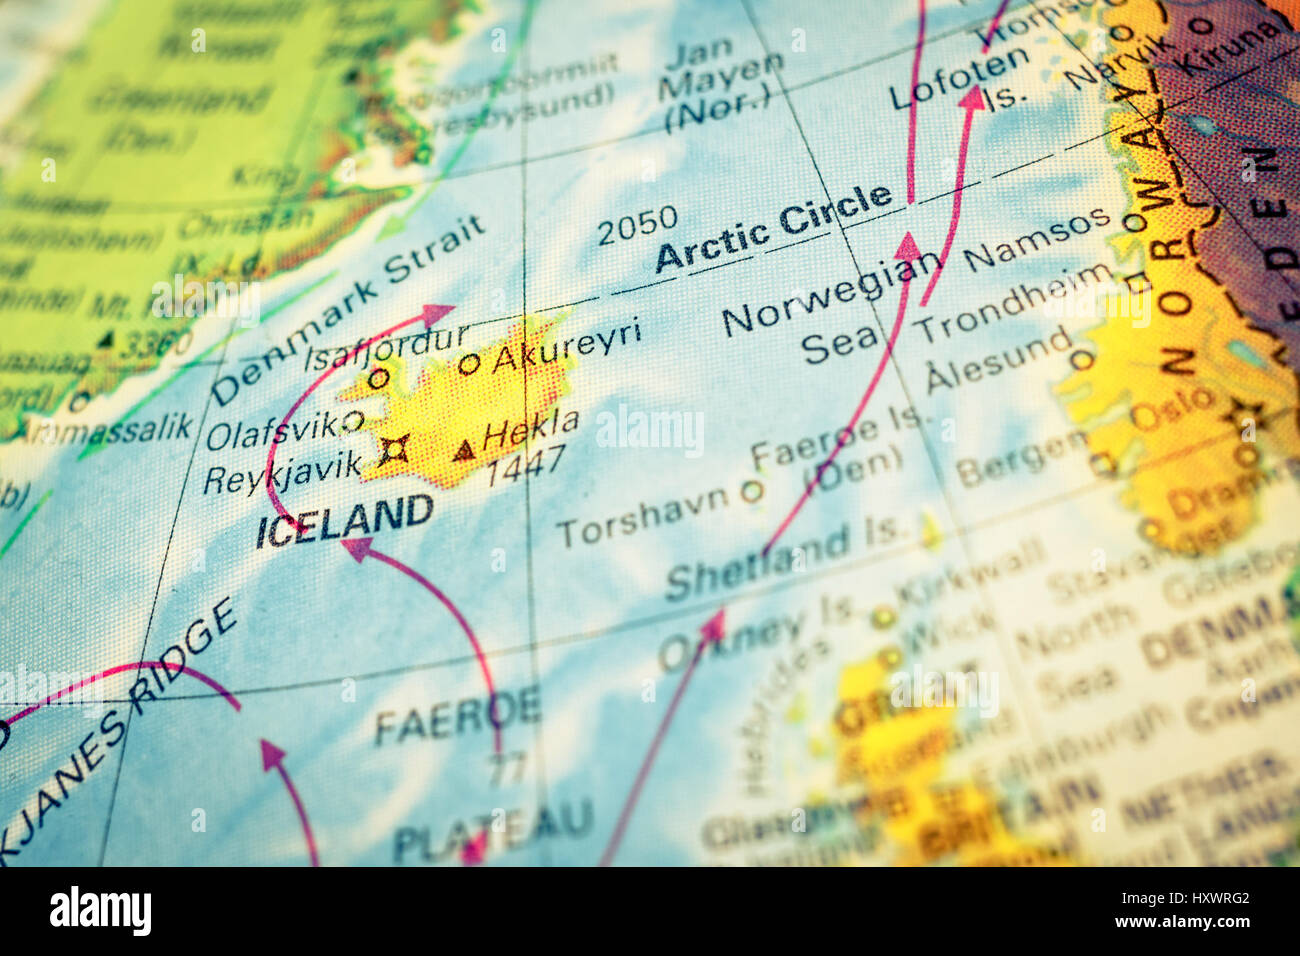 Globe map arctic circle stock photos globe map arctic circle stock map iceland vintage close up macro image of iceland map selective focus reykjavik gumiabroncs Gallery